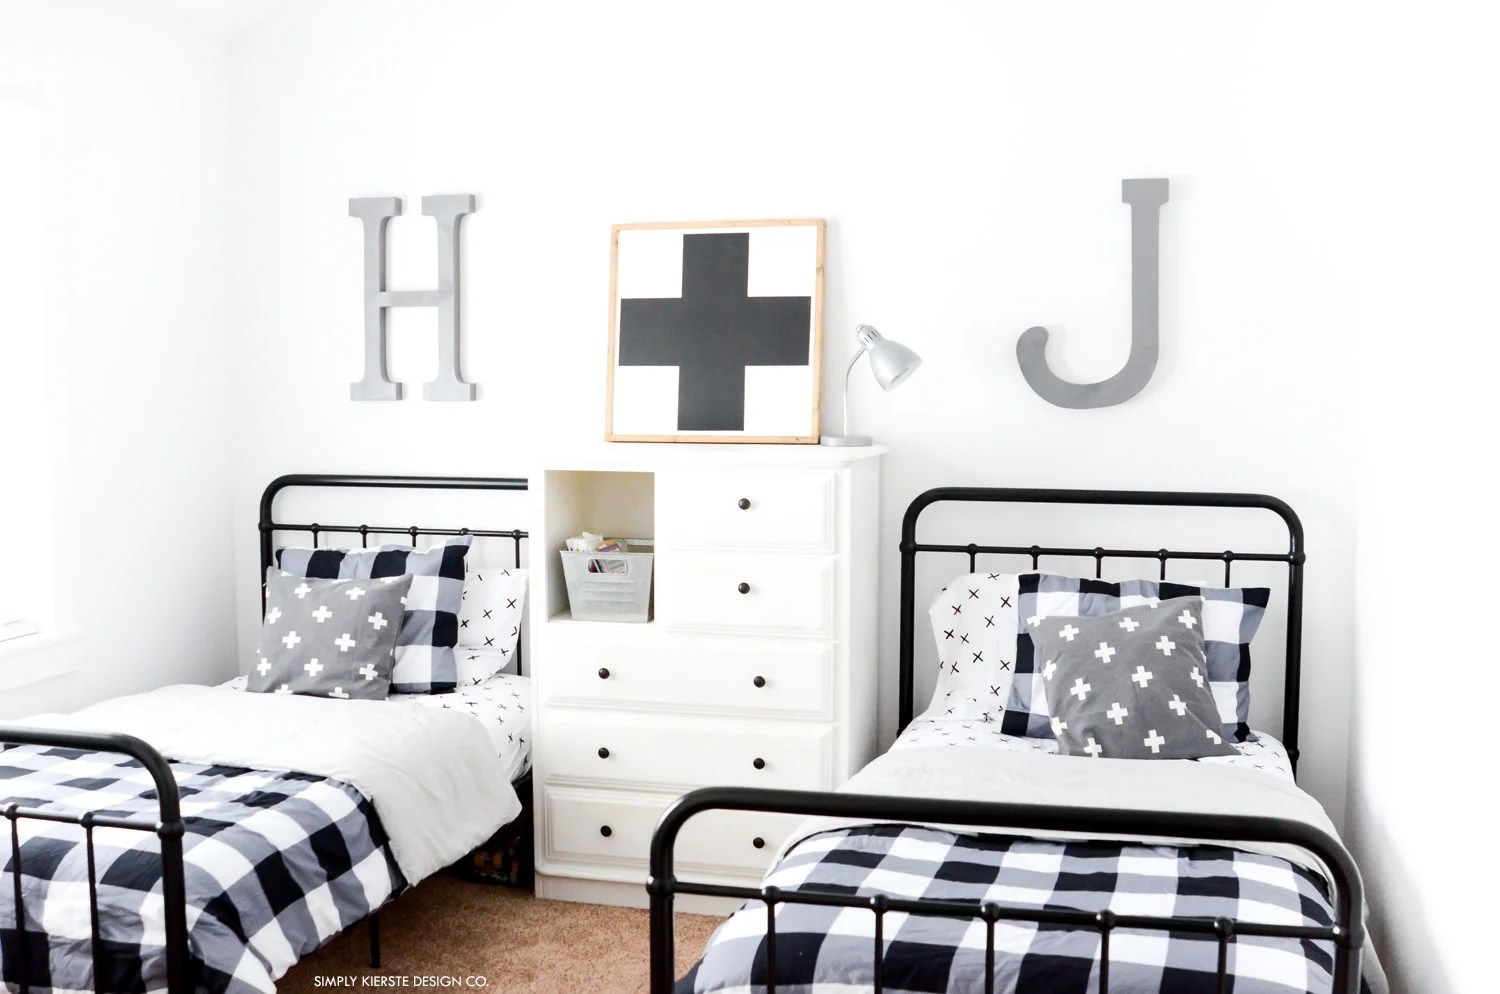 Black Buffalo Check Boys' Bedroom Makeover | Boys' Room on a Budget | oldsaltfarm.com #buffalocheck #boysbedroom #bedroommakeover #industrialbedroom